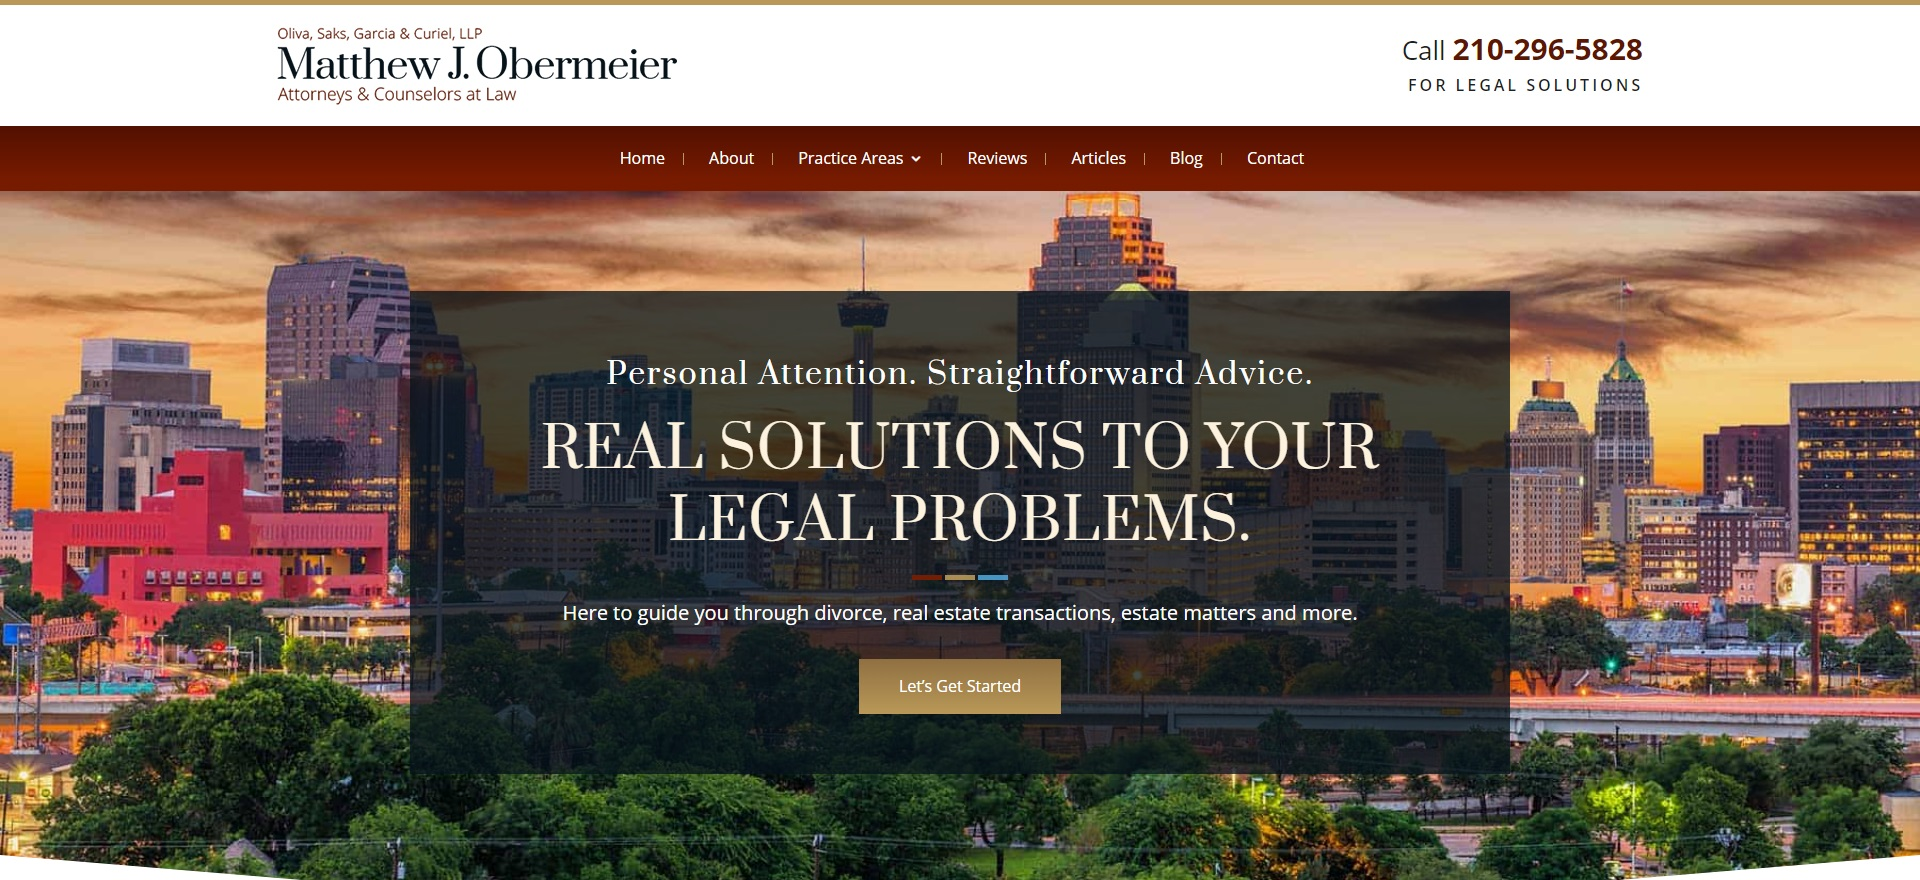 The Best Contract Attorneys in San Antonio